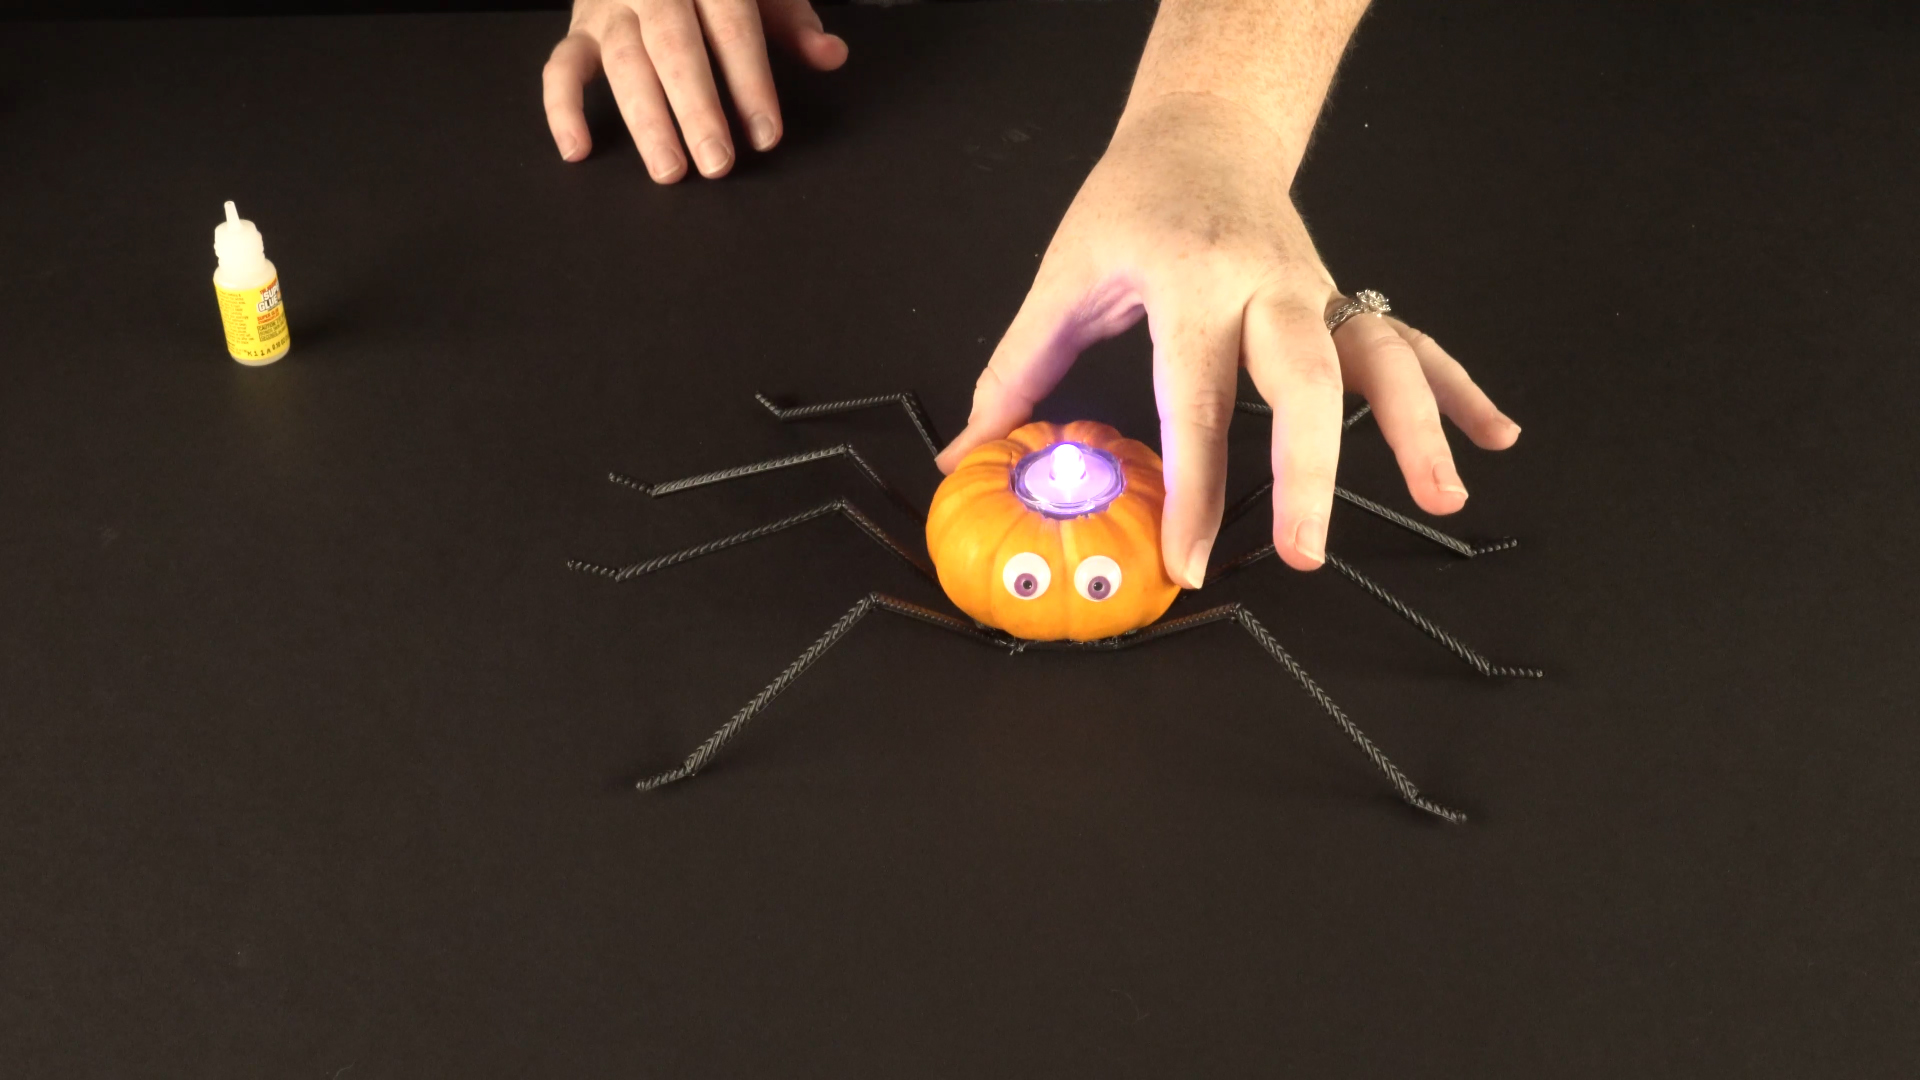 Halloween crafts with color-changing led tea lights - spider step 5